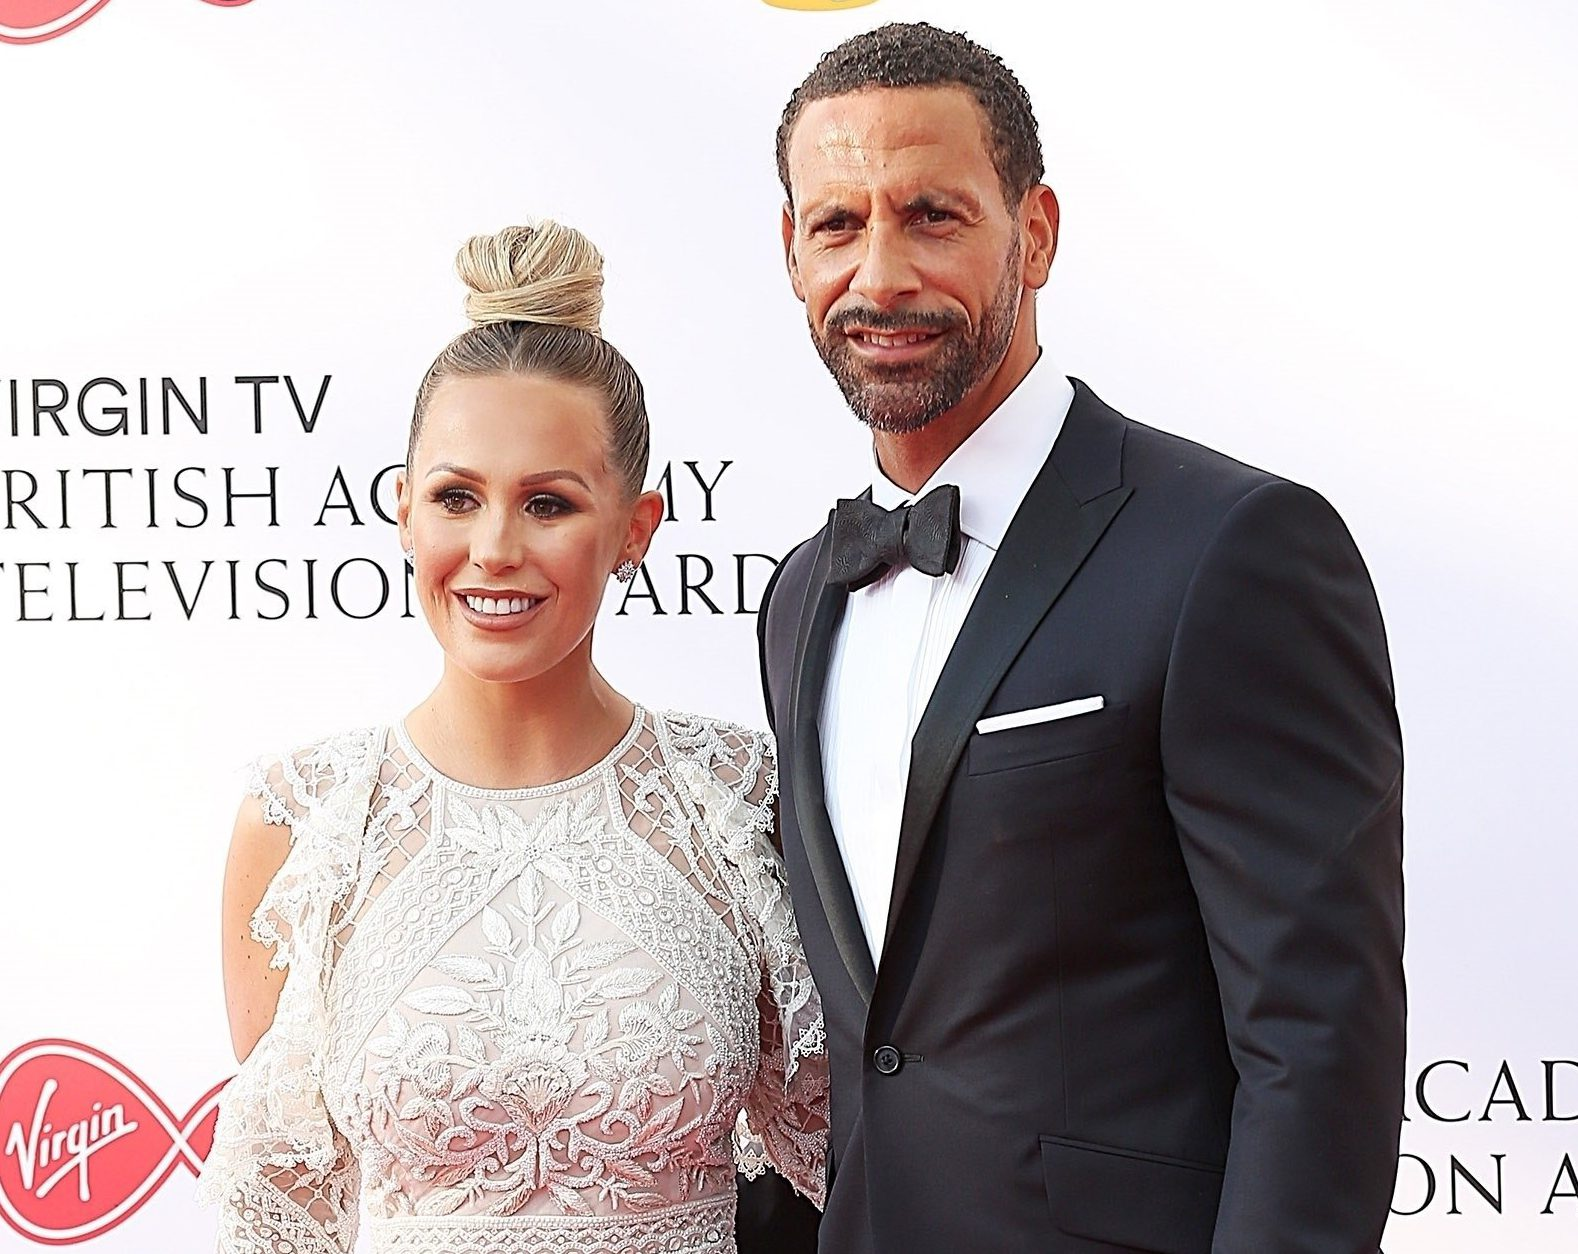 Rio Ferdinand is 'feeling the love' after Kate Wright engagement as he shares sweet message to fans